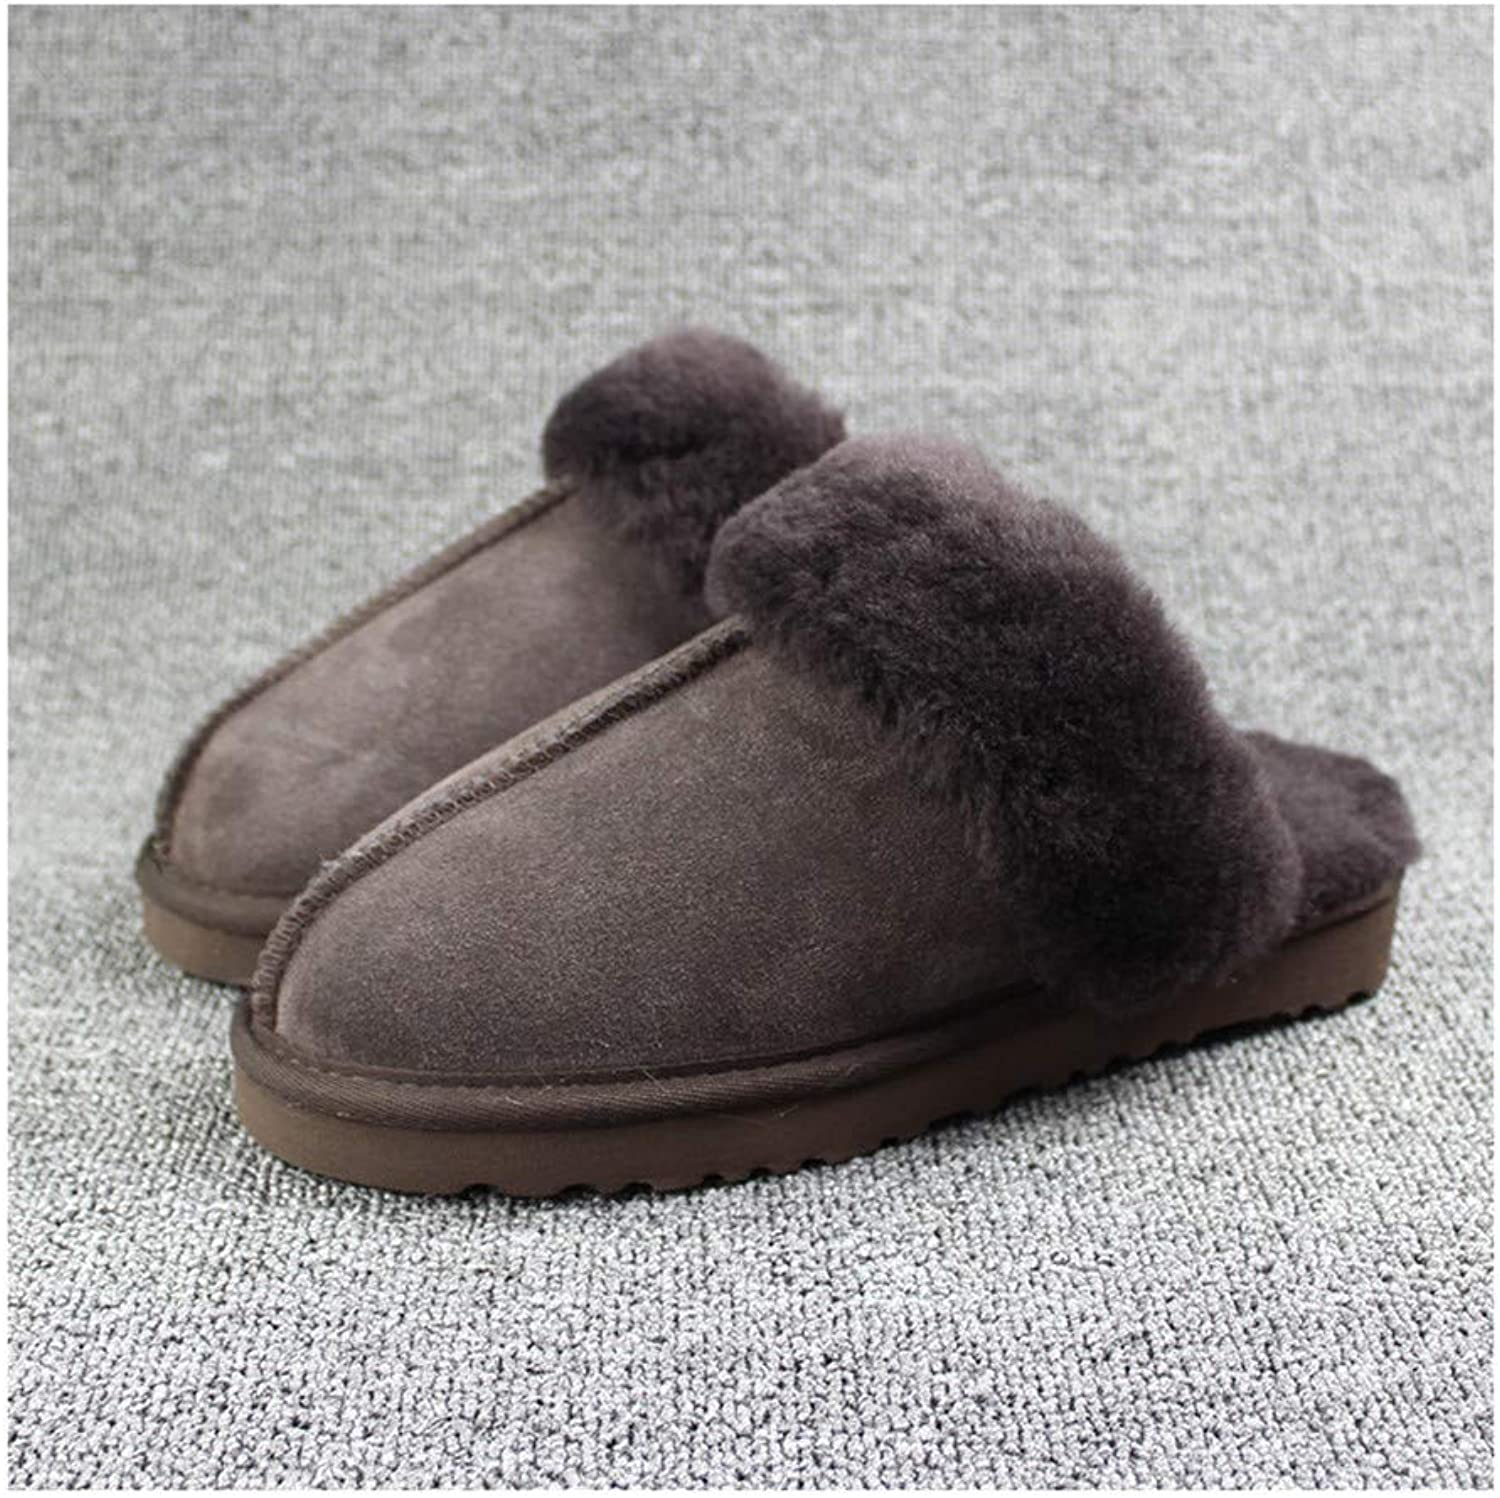 GAOHUI Men High-End Handmade Cotton Slippers Indoor Thermal Slippery Slippers Chocolate color